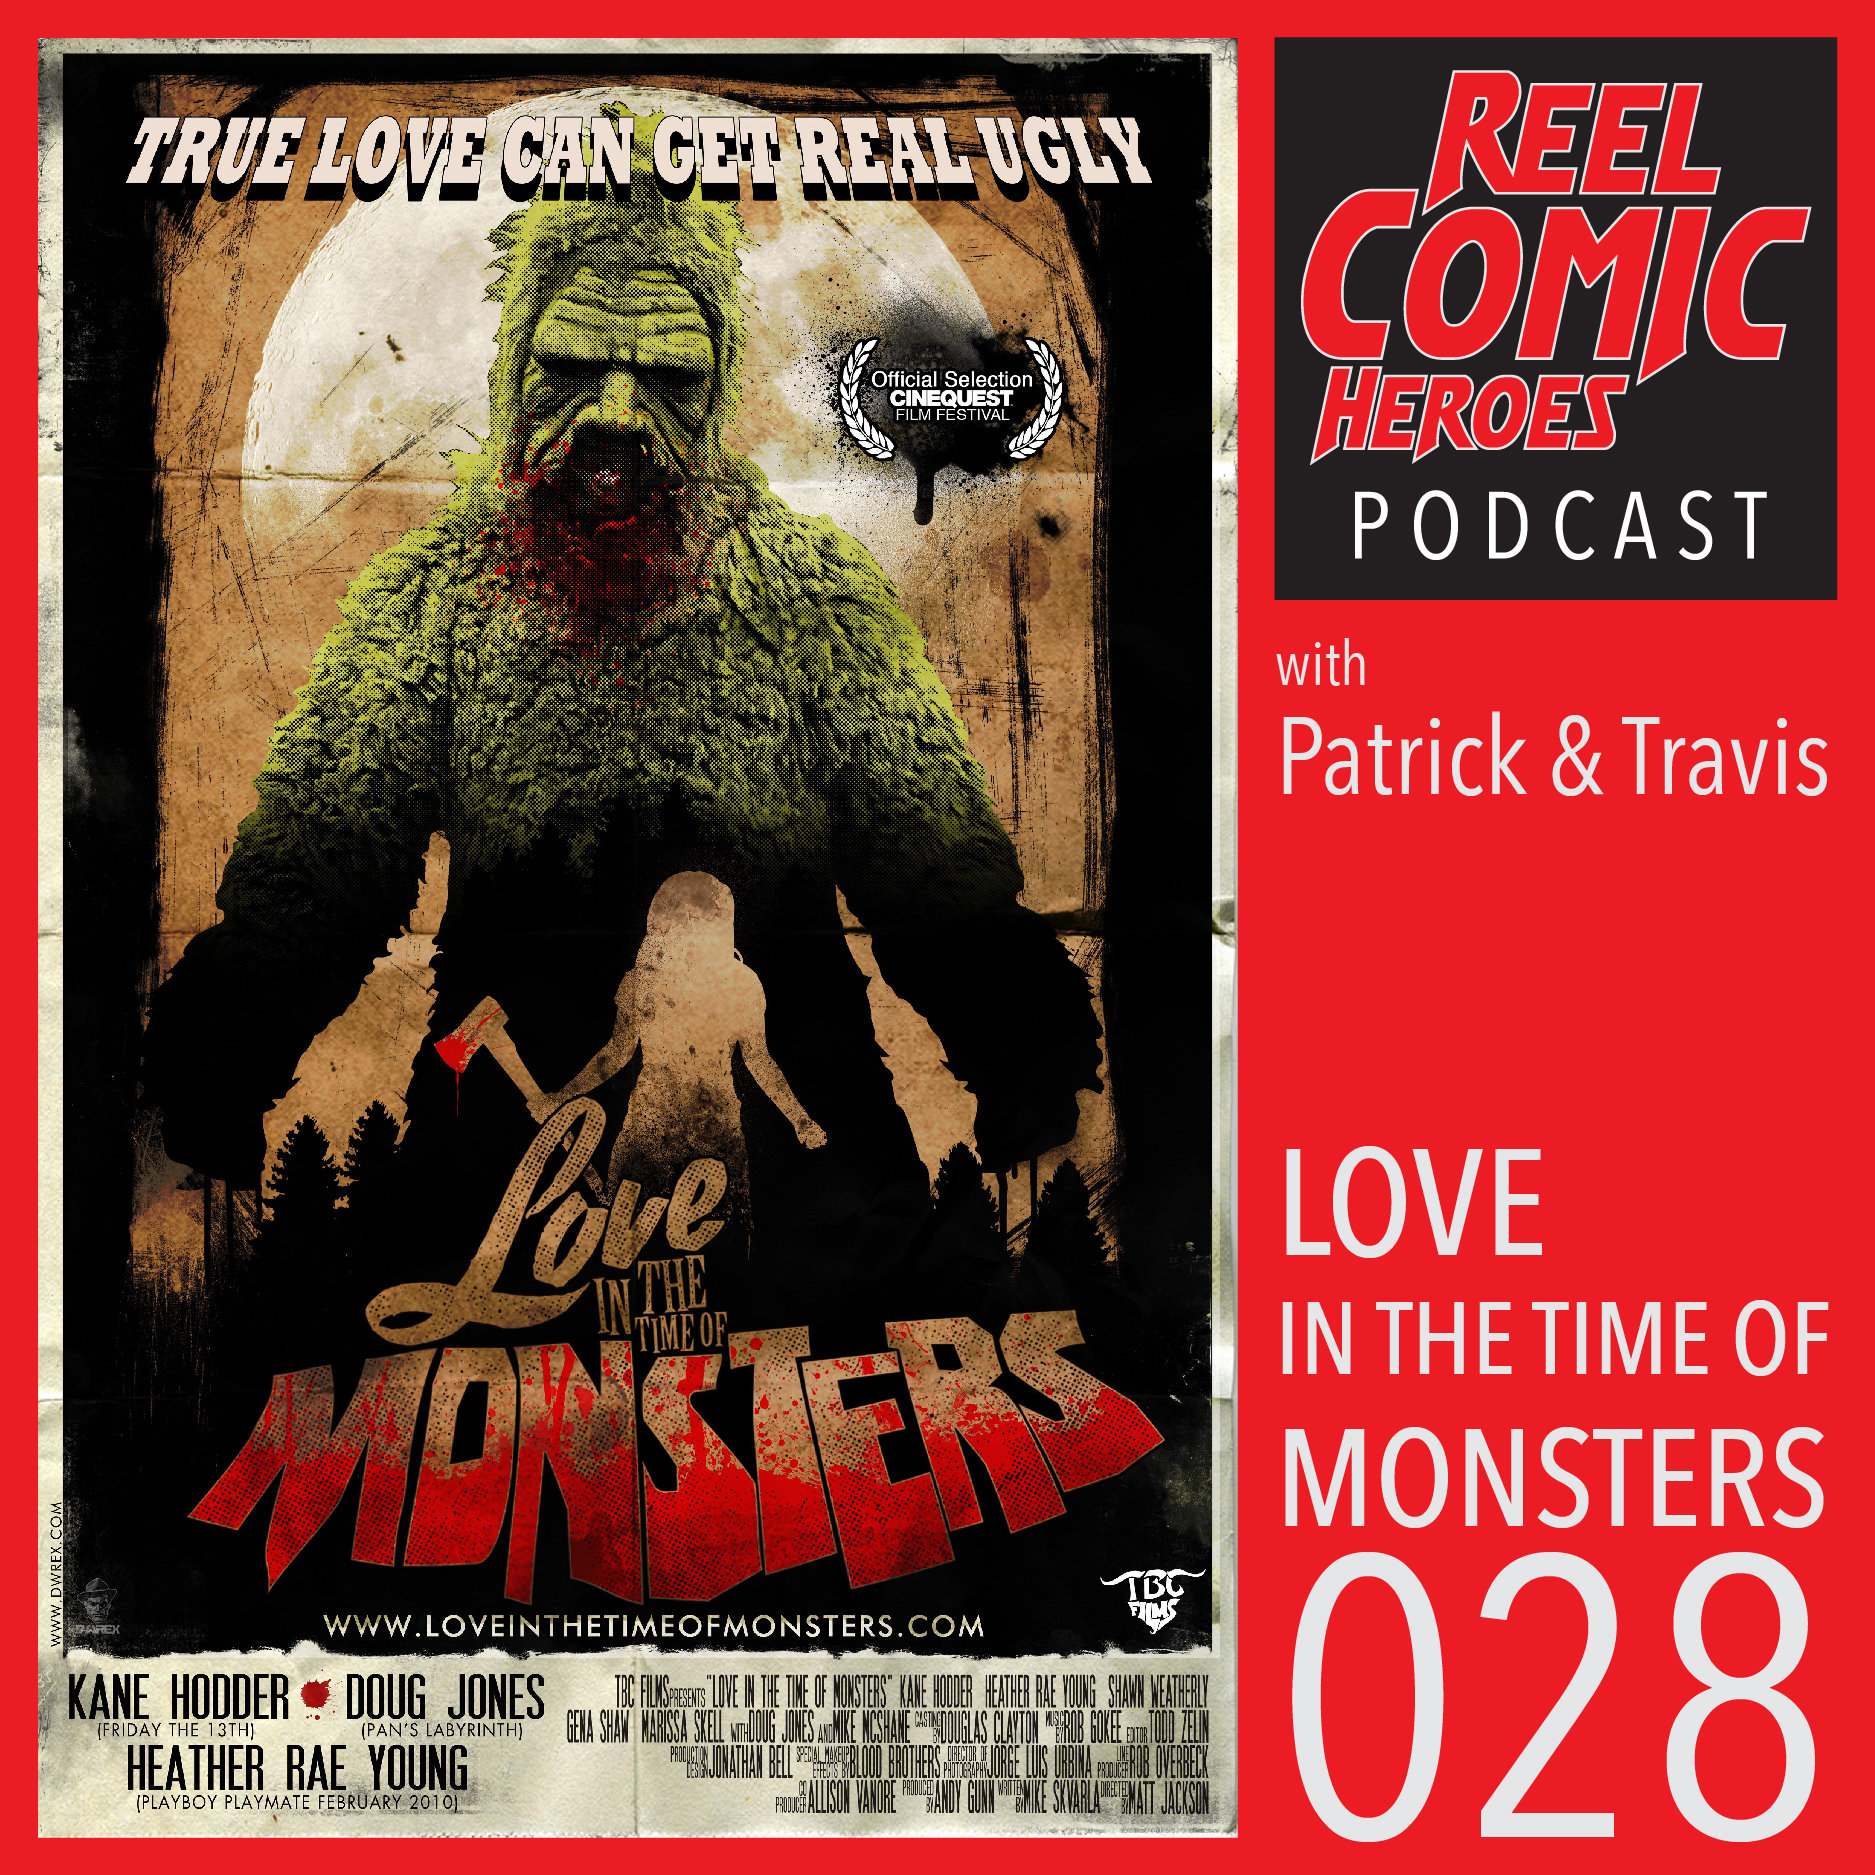 Artwork for Reel Comic Heroes 028 - SPECIAL - Love in the Time of Monsters